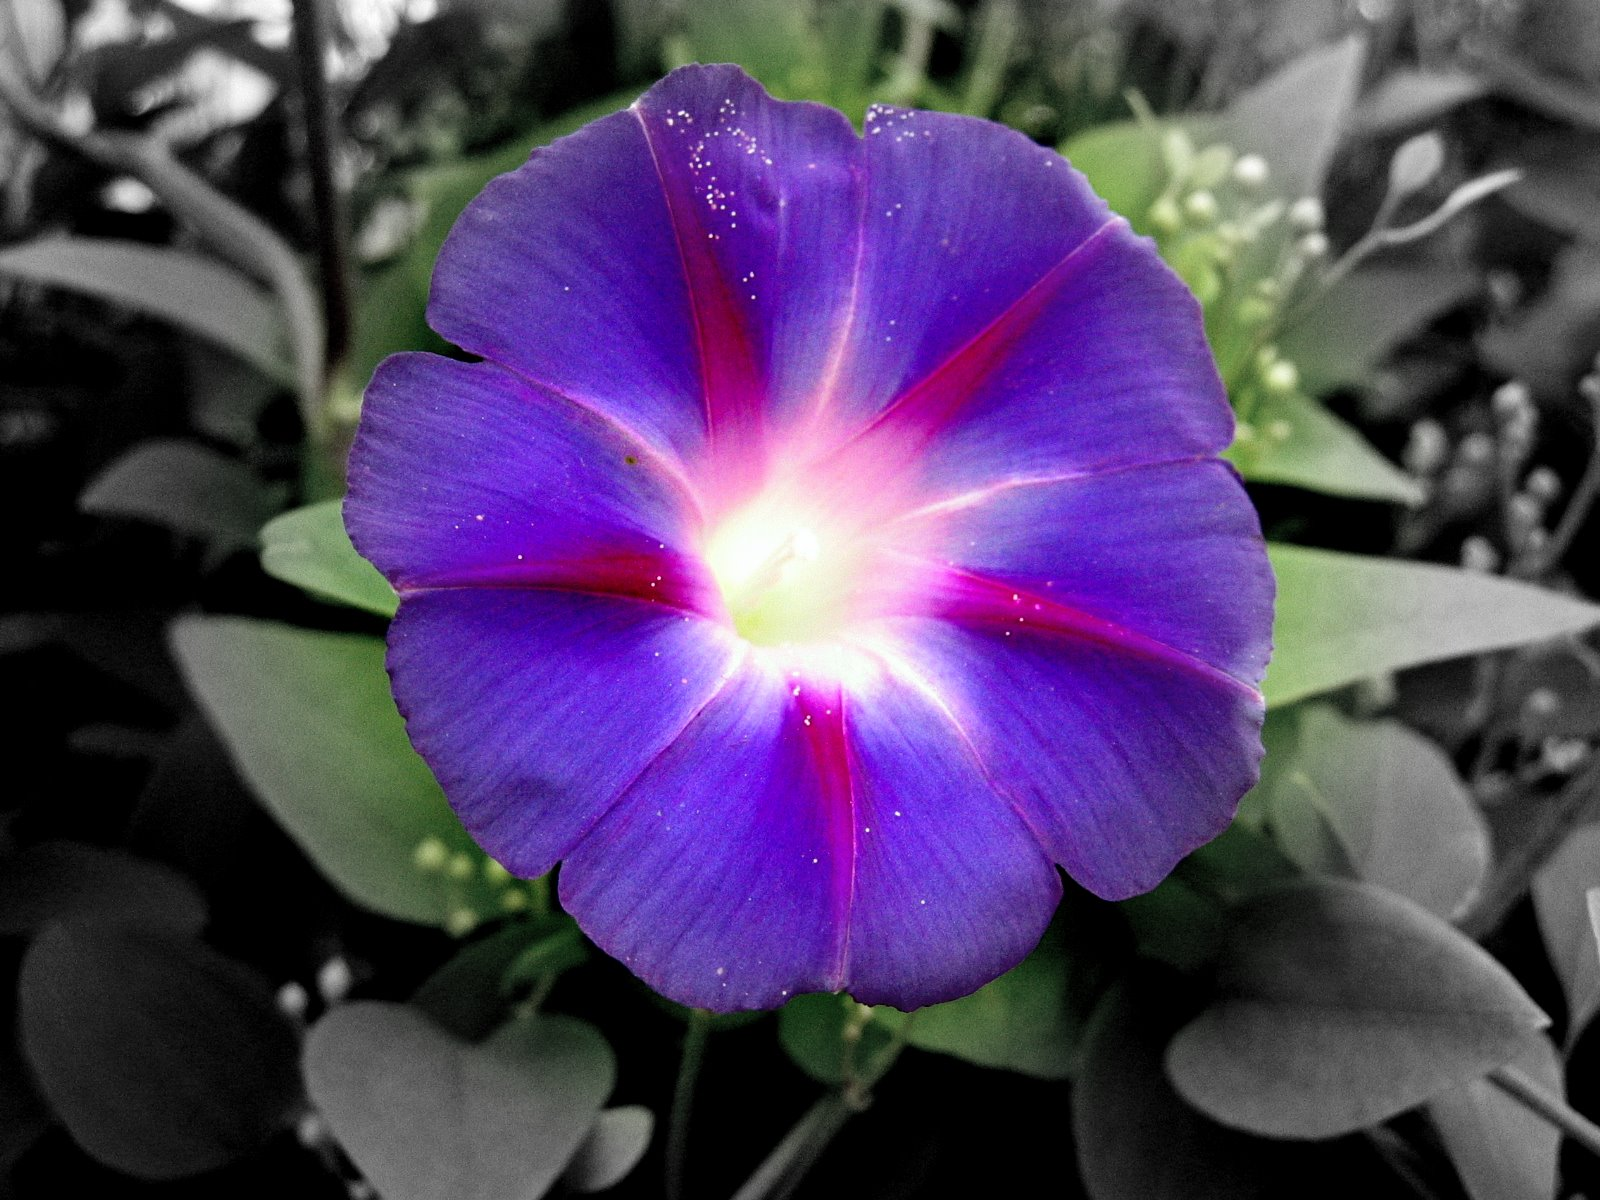 Morning glory is one type of flower of about 100 species of flowers